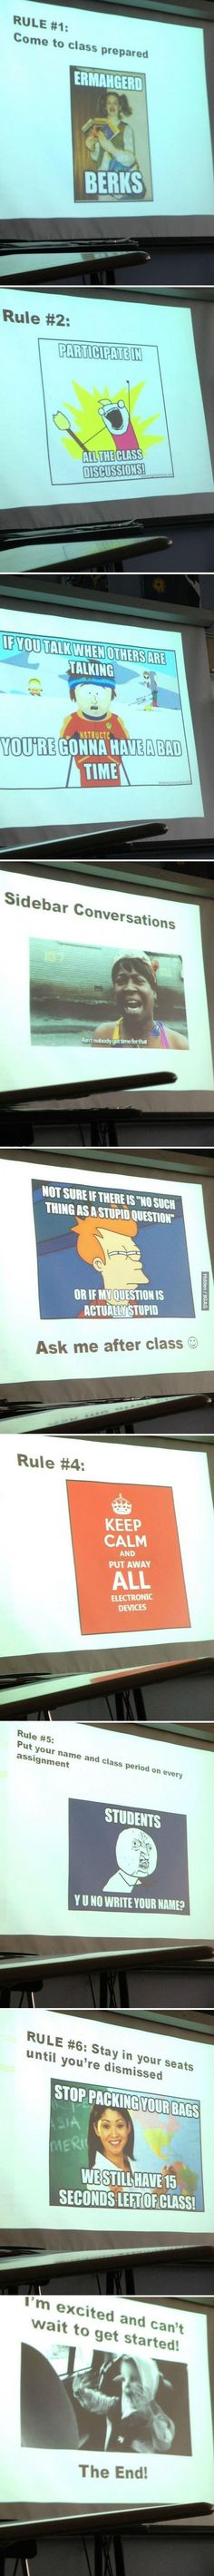 Using memes to introduce class rules...awesome!